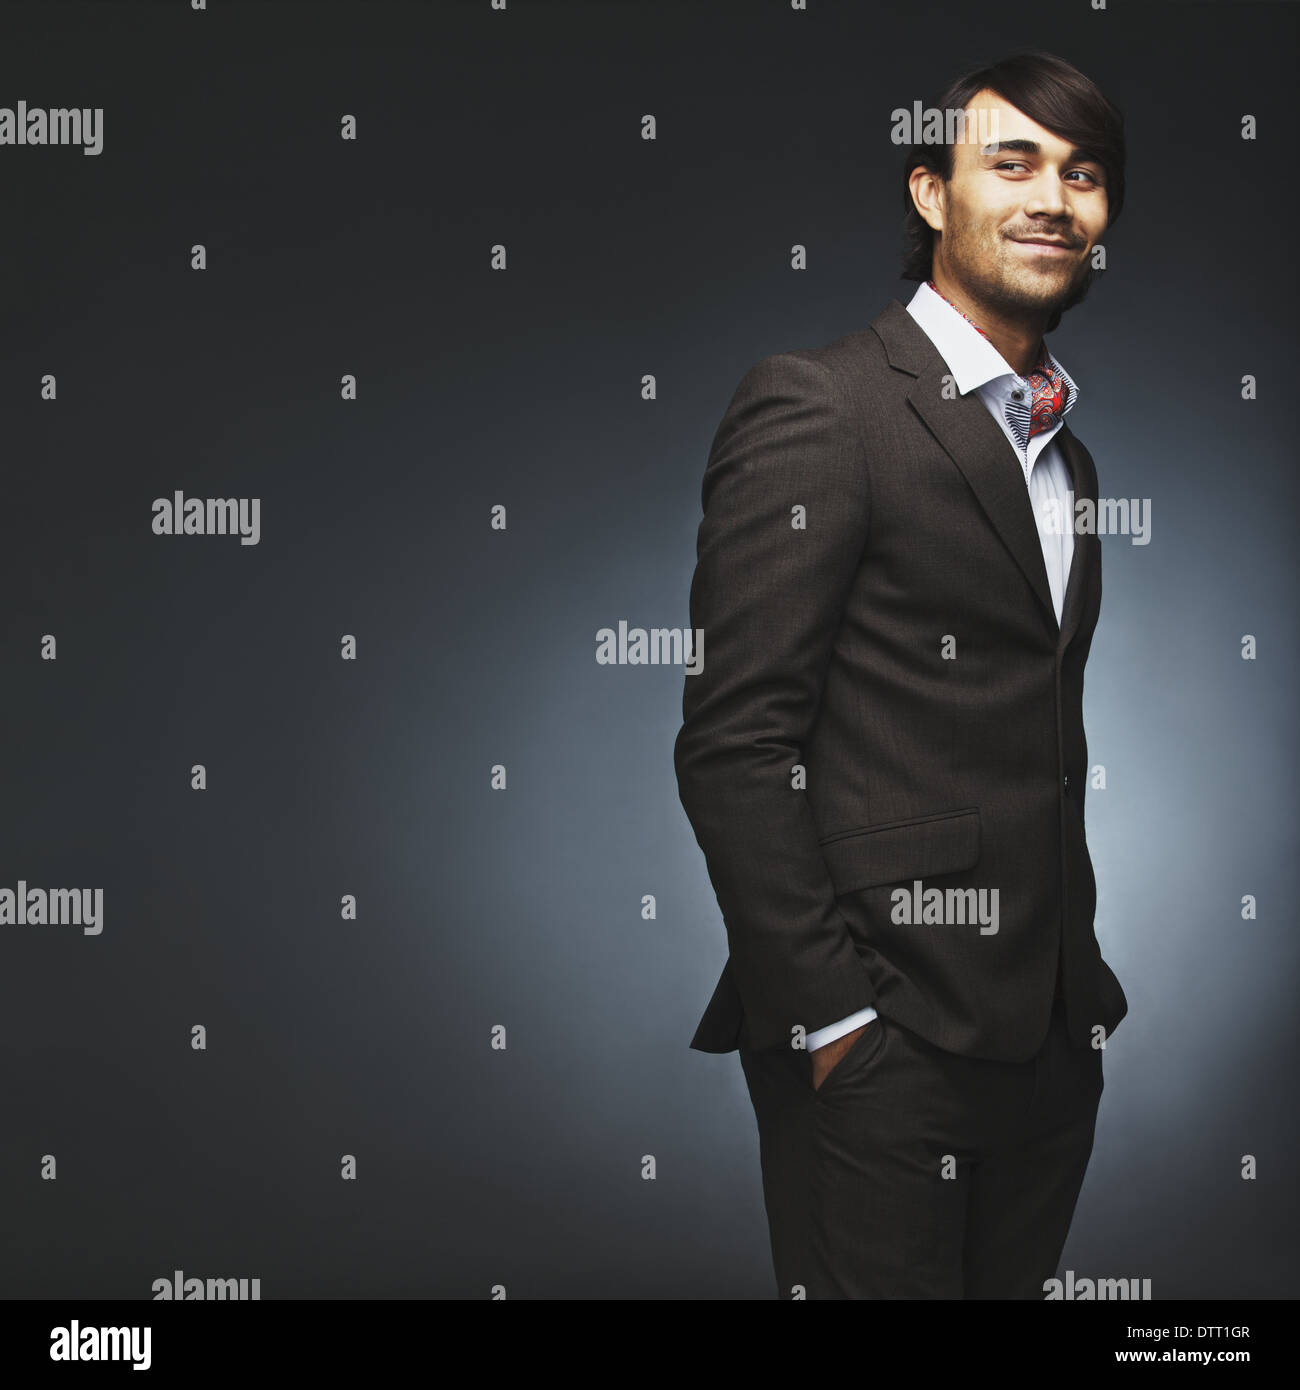 Attractive young man wearing suit standing with his hands in pocket looking over shoulder. Handsome male fashion model posing. - Stock Image